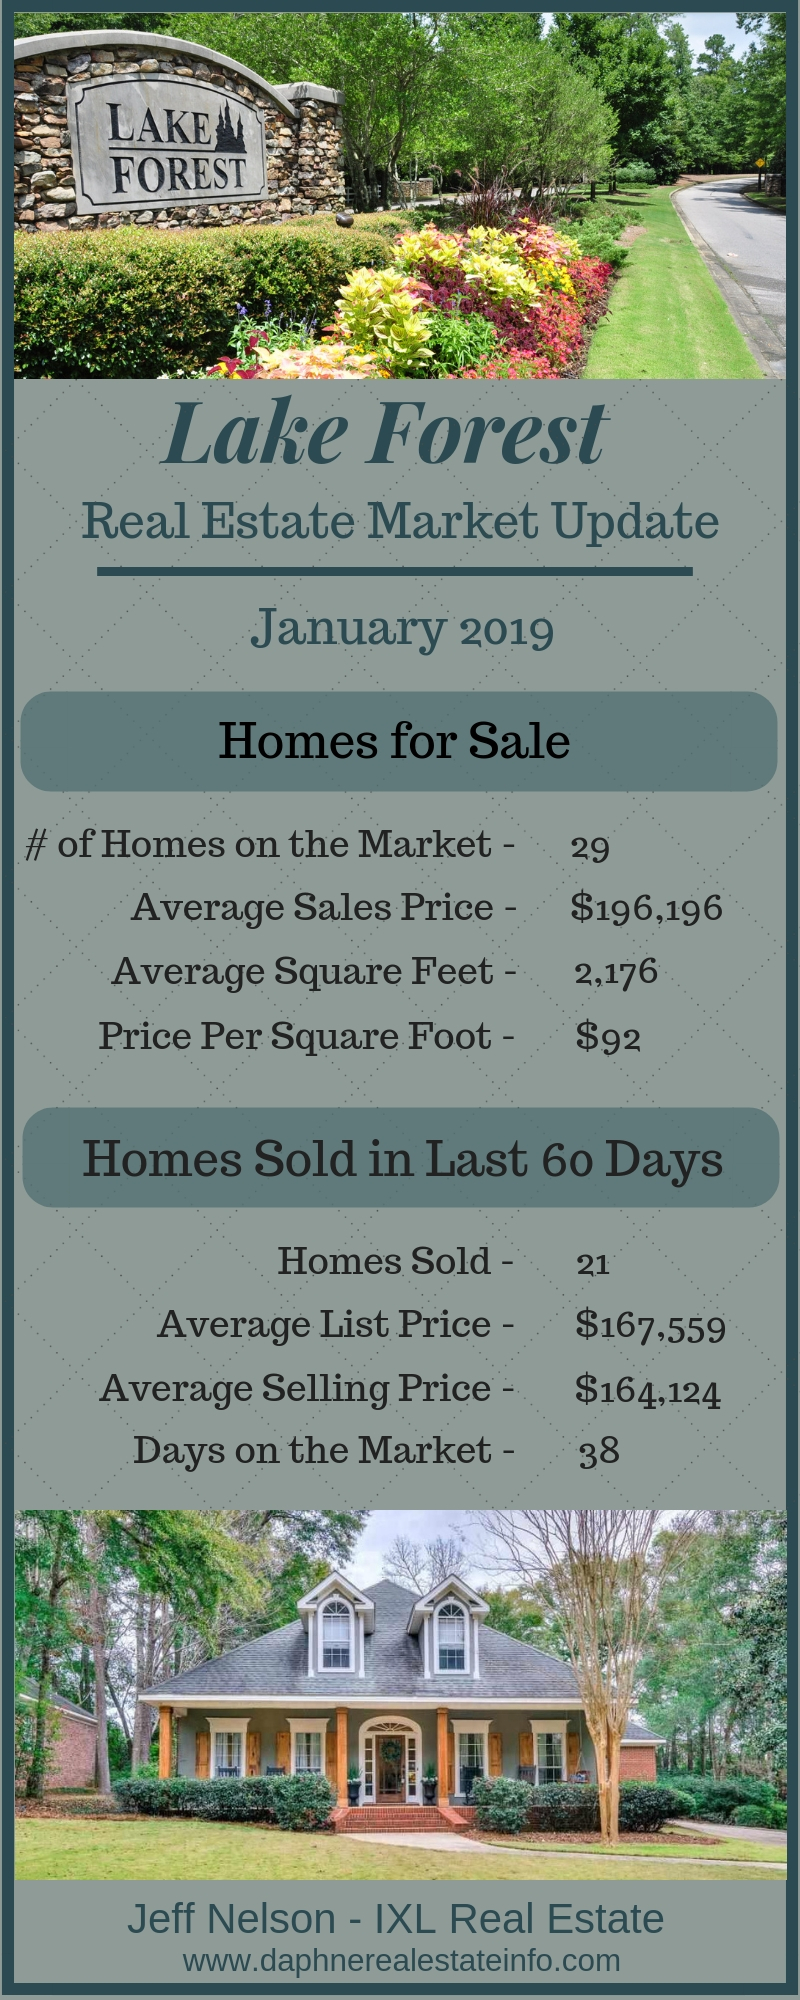 Lake Forest Real Estate Market Update - Jan 2019